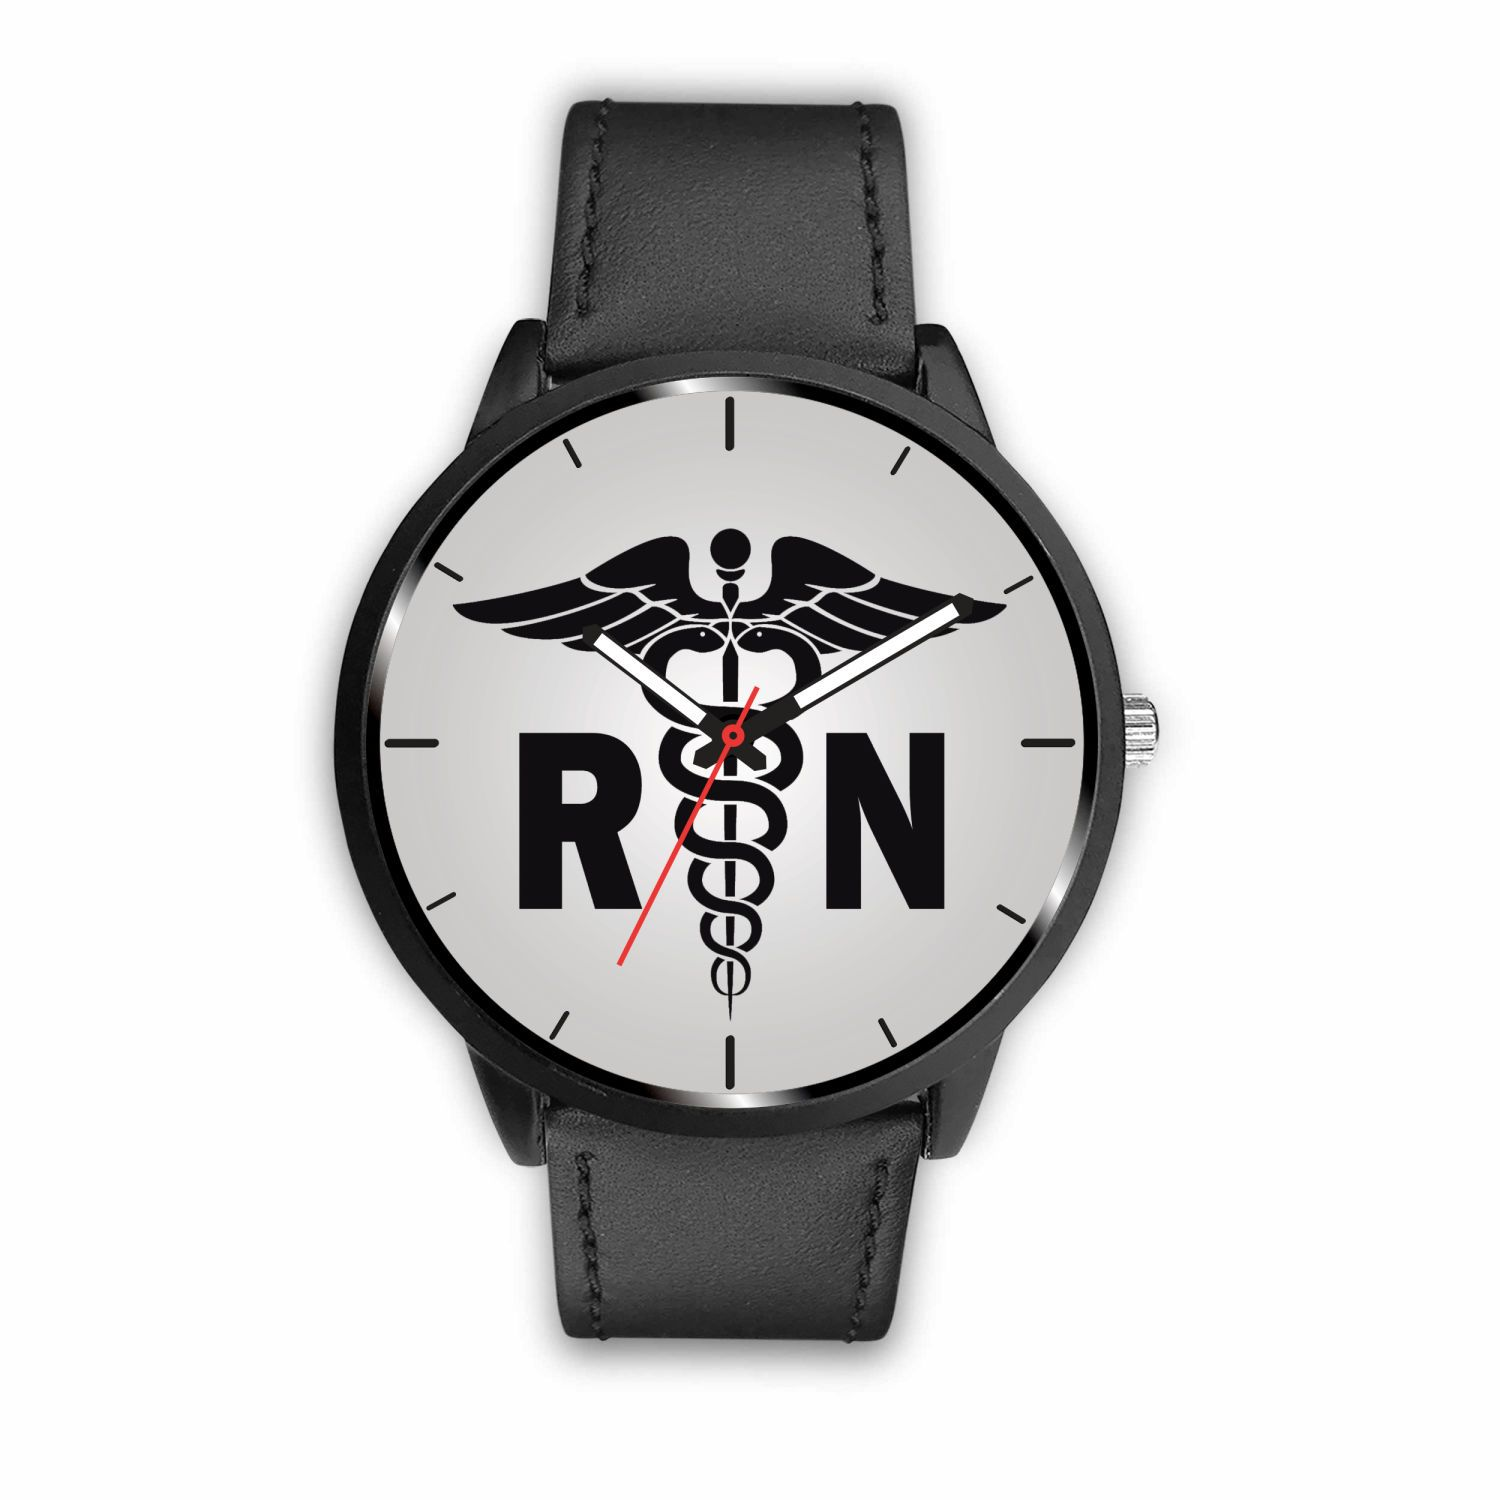 Awesome Nurse RN Watch - Free US Shipping Sale